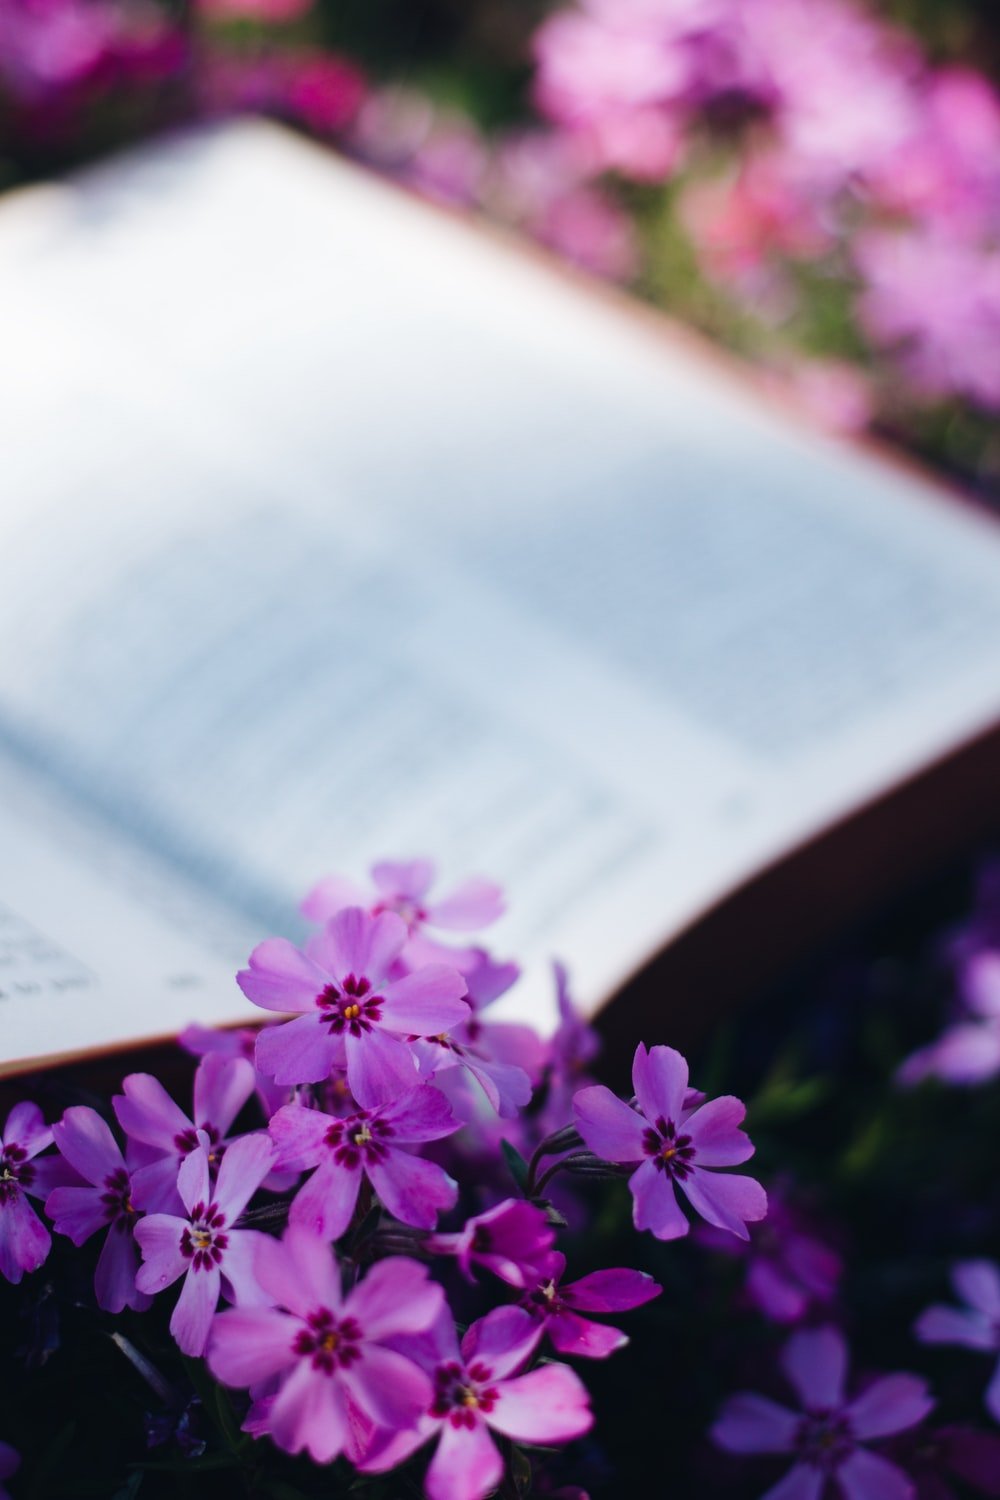 purple flowers on book page